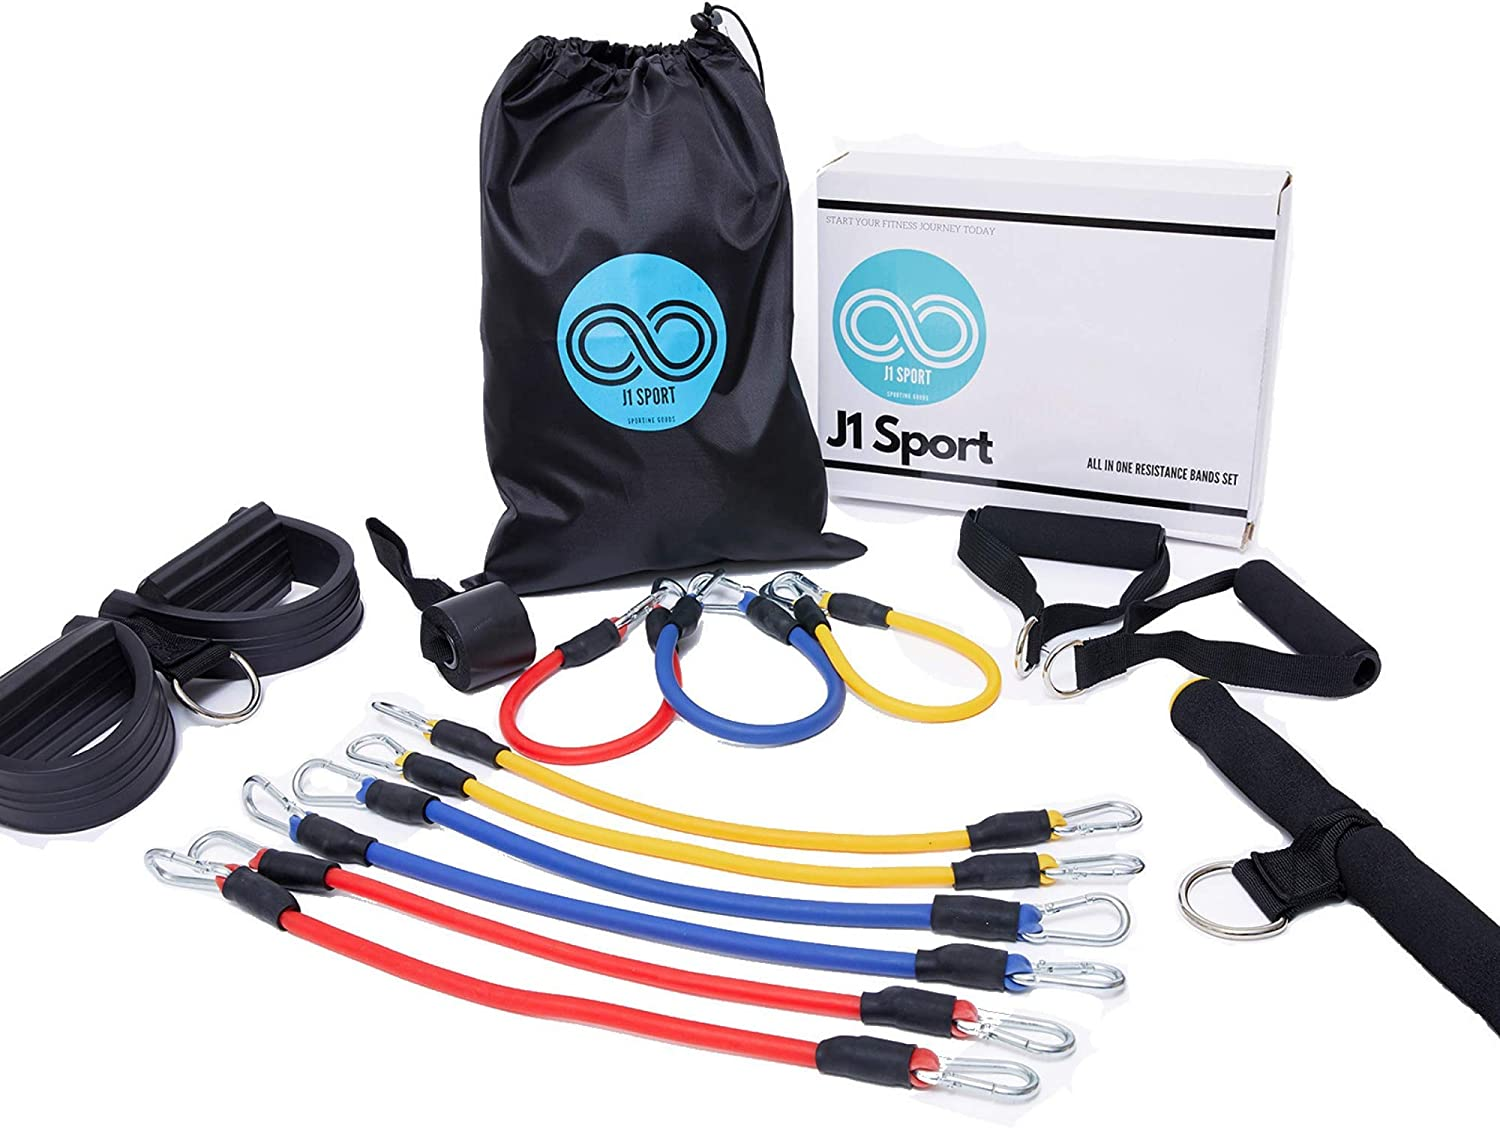 J1 Sport All-in-One Pedal Resistance Bands Set - 15 Piece Home Workout Equipment up to 180 LBS Pedal & Sit ups Pull Exercise Muscle Toning Tension Rope  Strength Training   Stretching